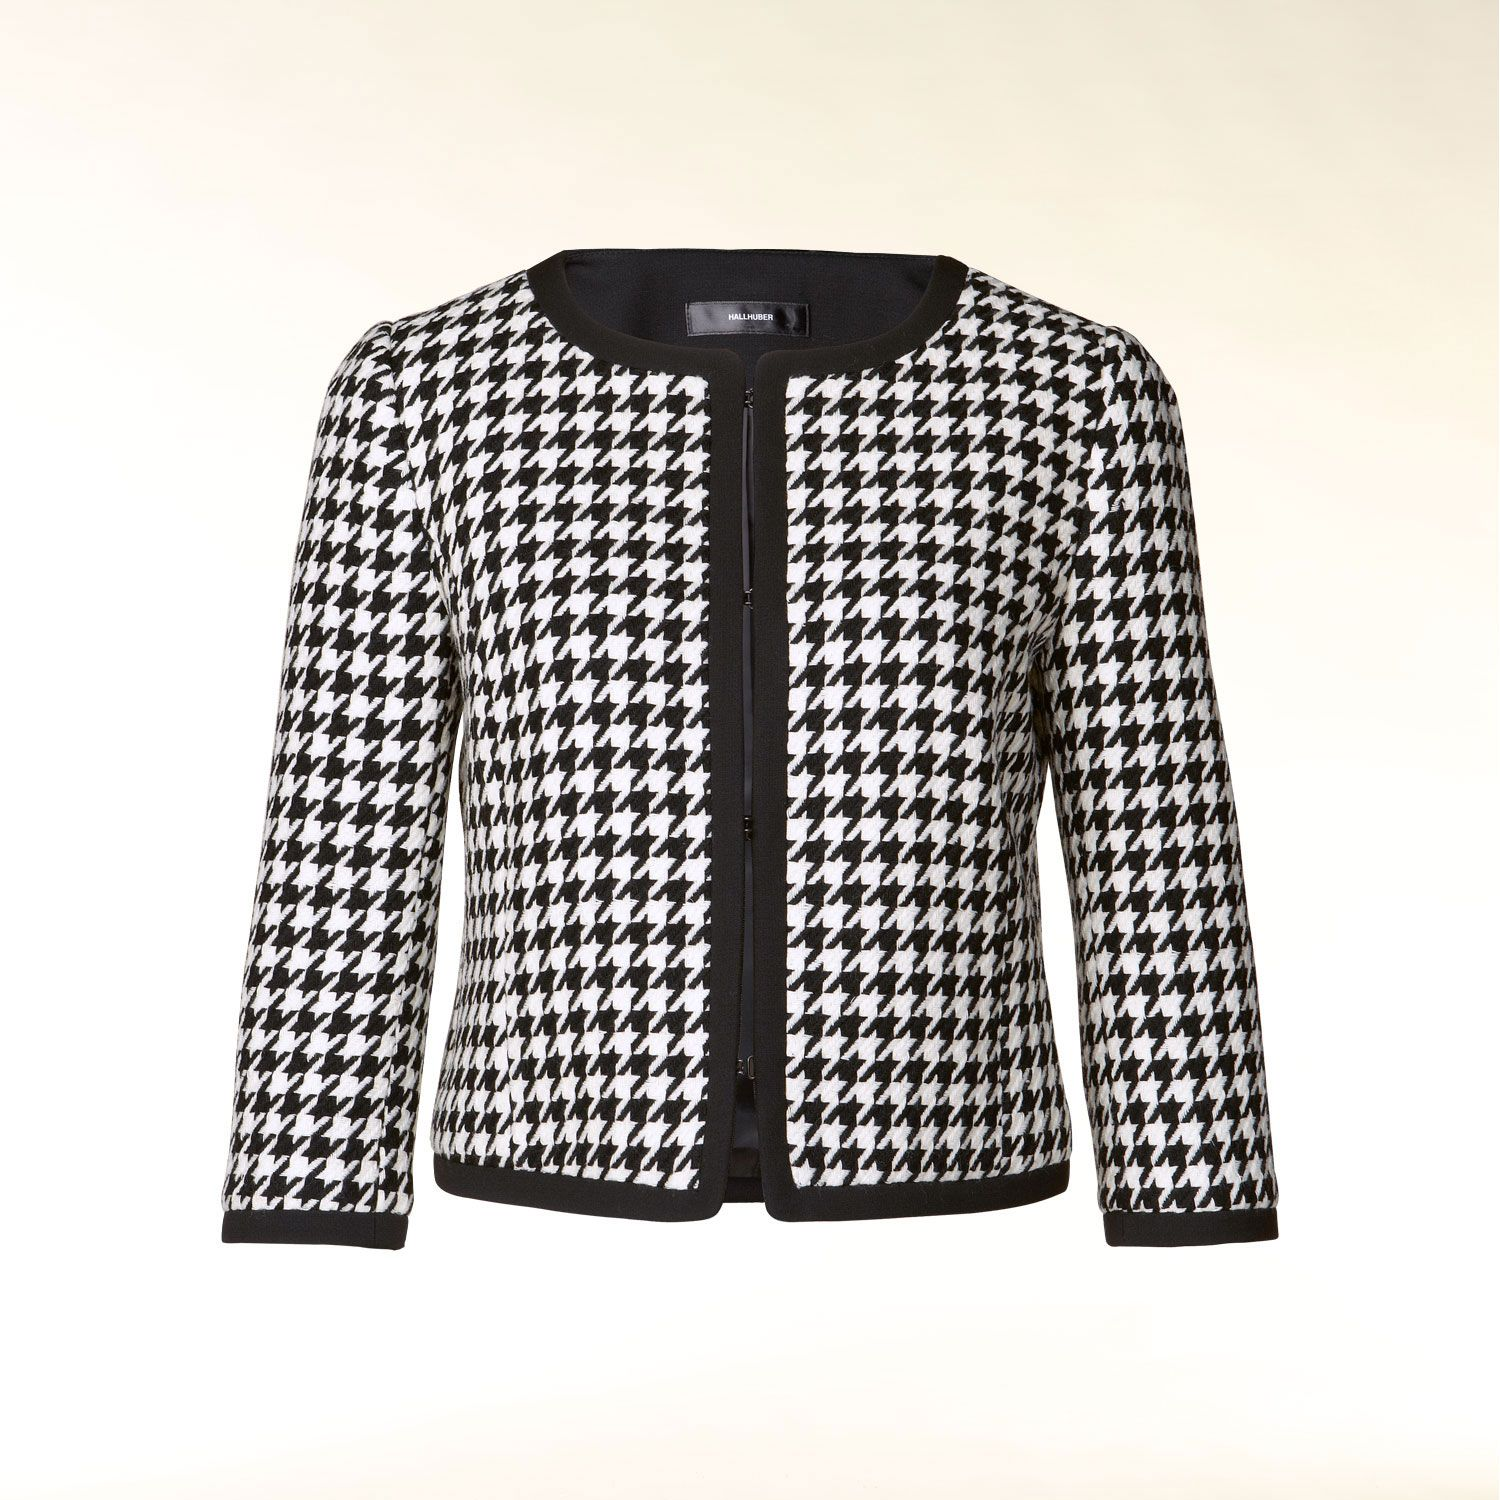 3/4 sleeve knit houndstooth jacket